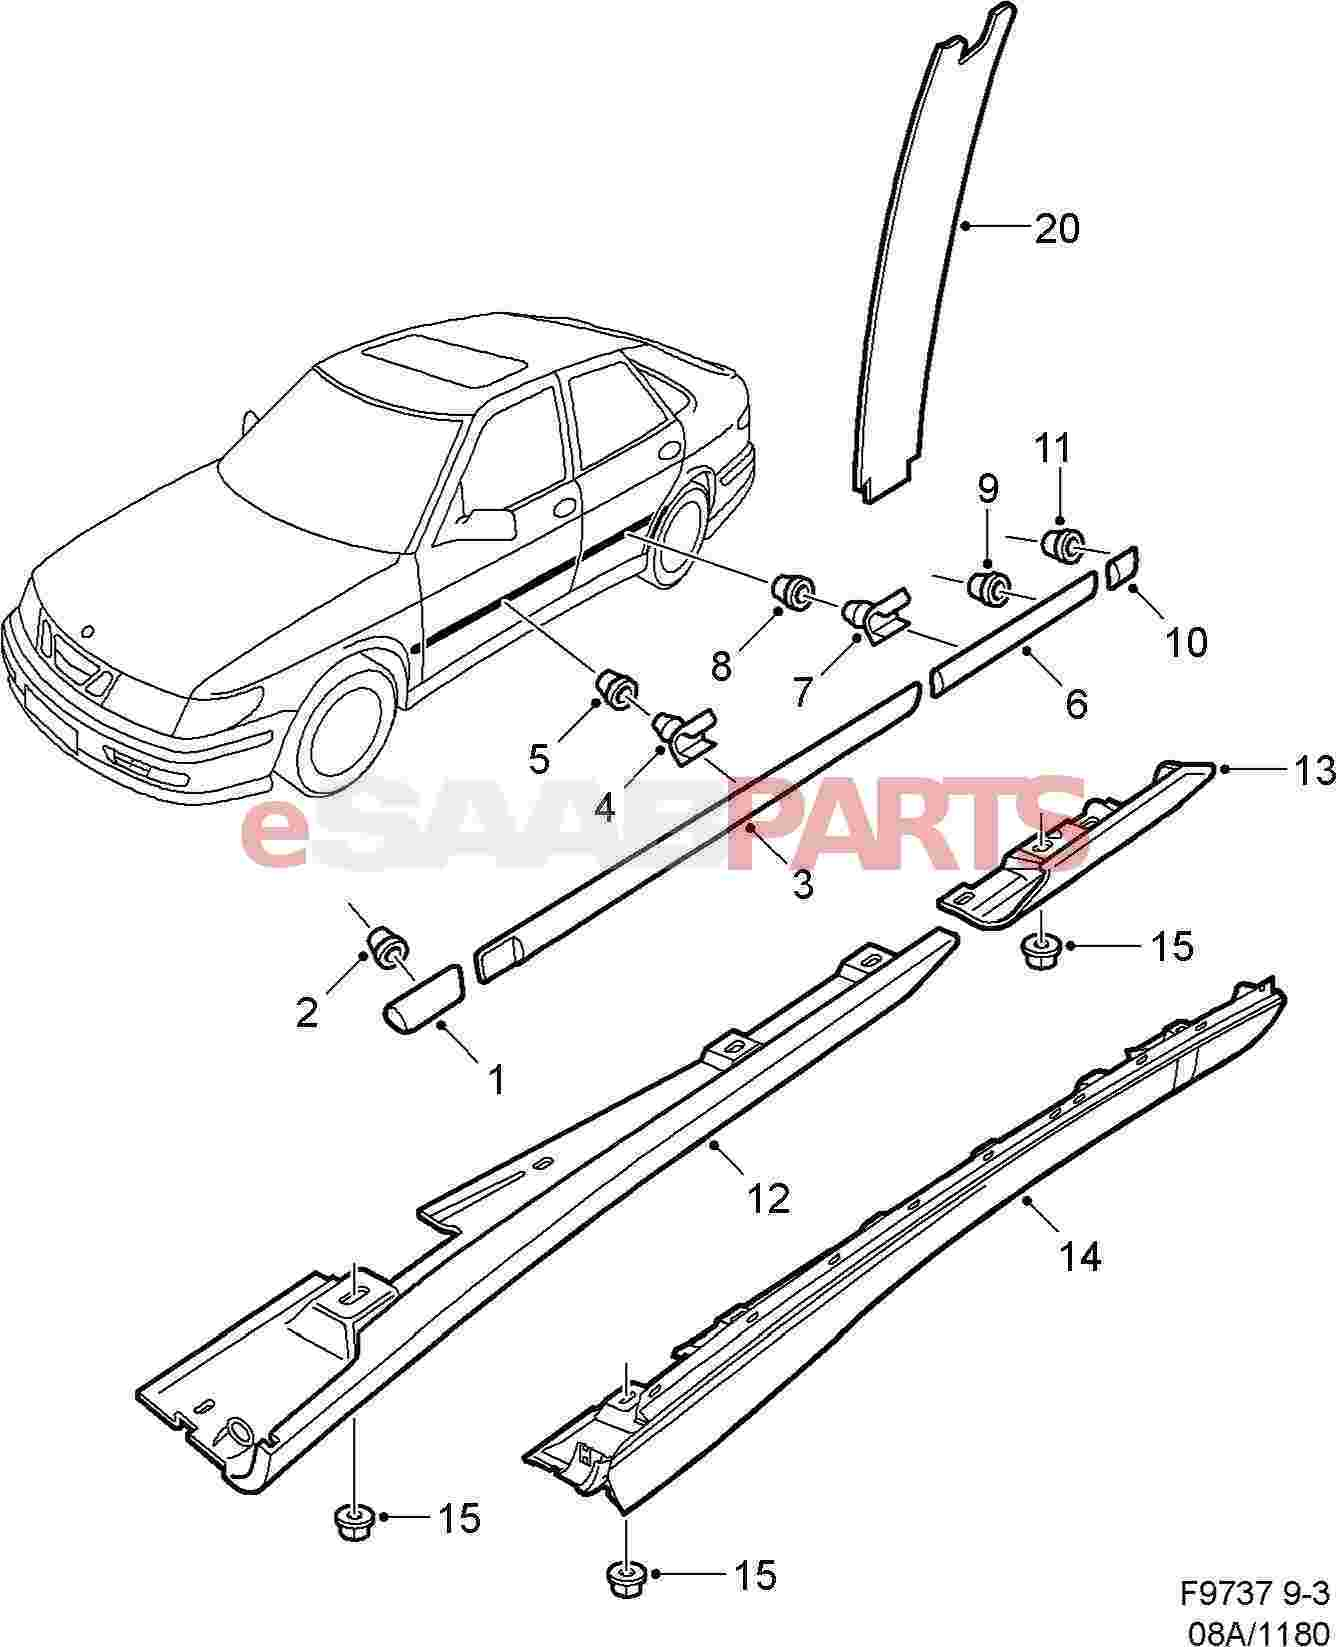 Saab 900 likewise 412 Przednia Szyba Pojedyncze together with 2006 Envoy Purge Solenoid Valve Location in addition 1995 Gmc Pickup Heater Diagram as well Fuel System Diagram For Ford Bronco 2 1988 9l. on saab suv